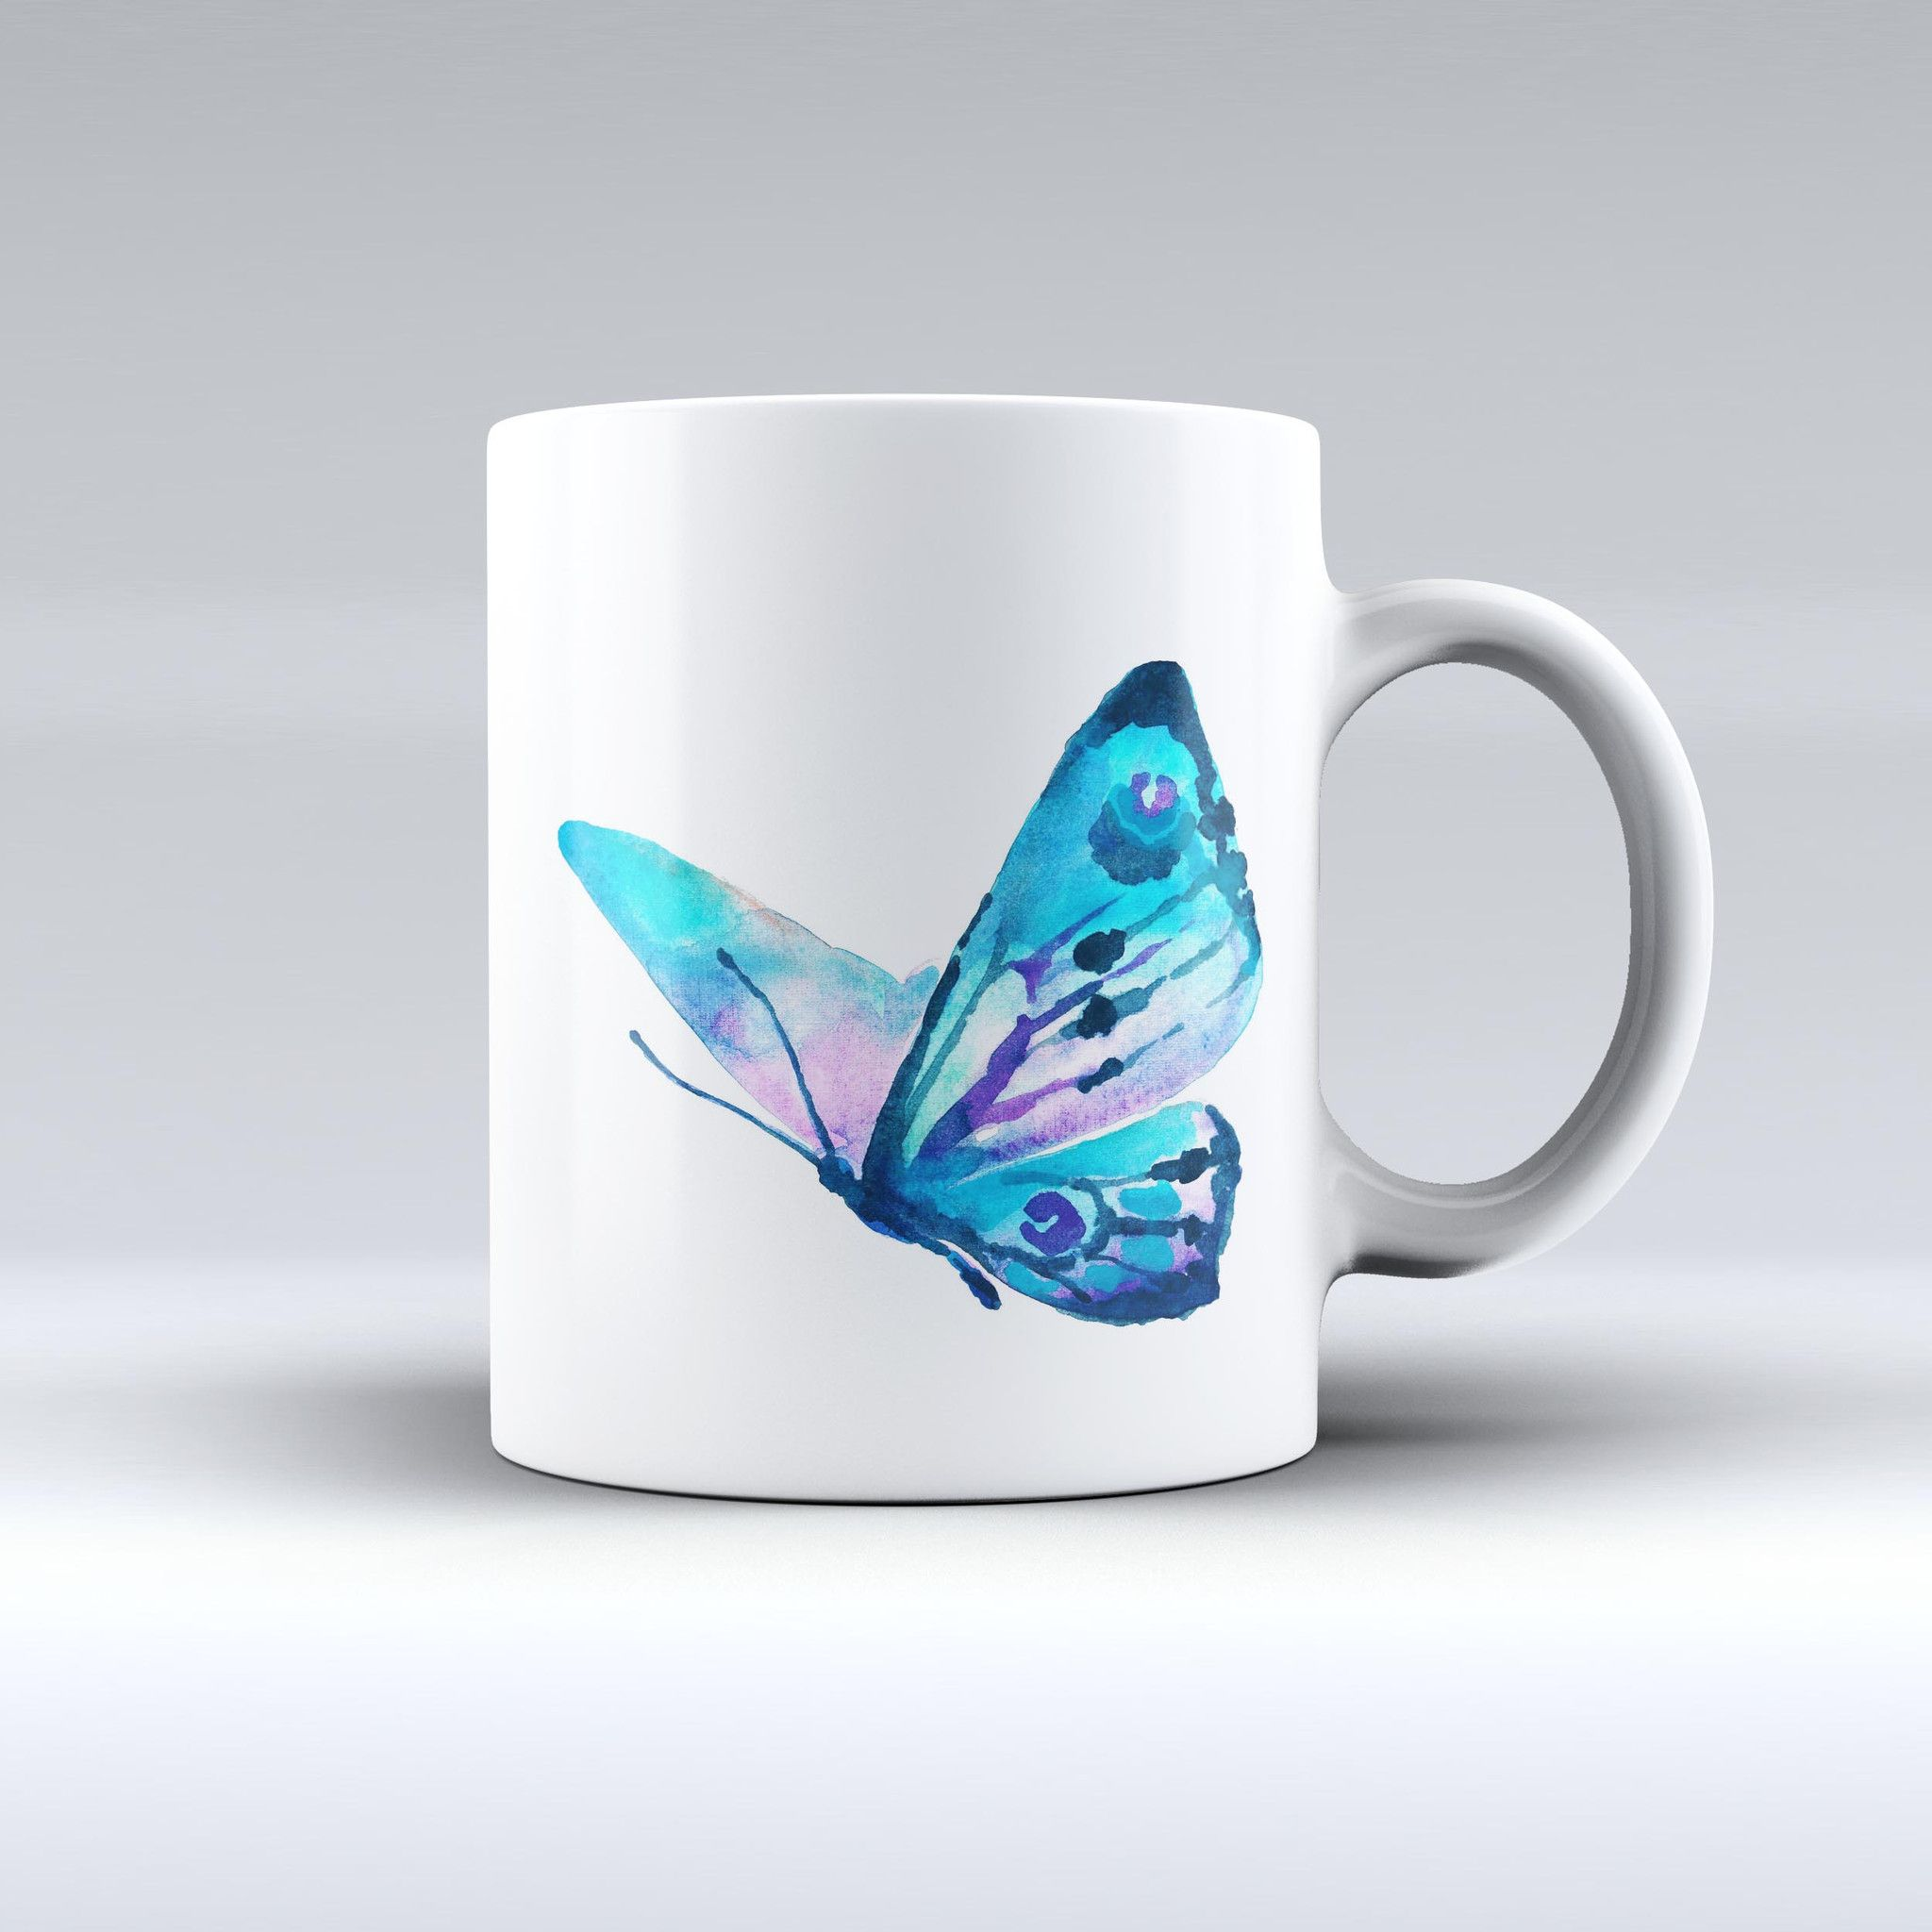 The Bright Graceful Butterfly ink-Fuzed Ceramic Coffee Mug from DesignSkinz